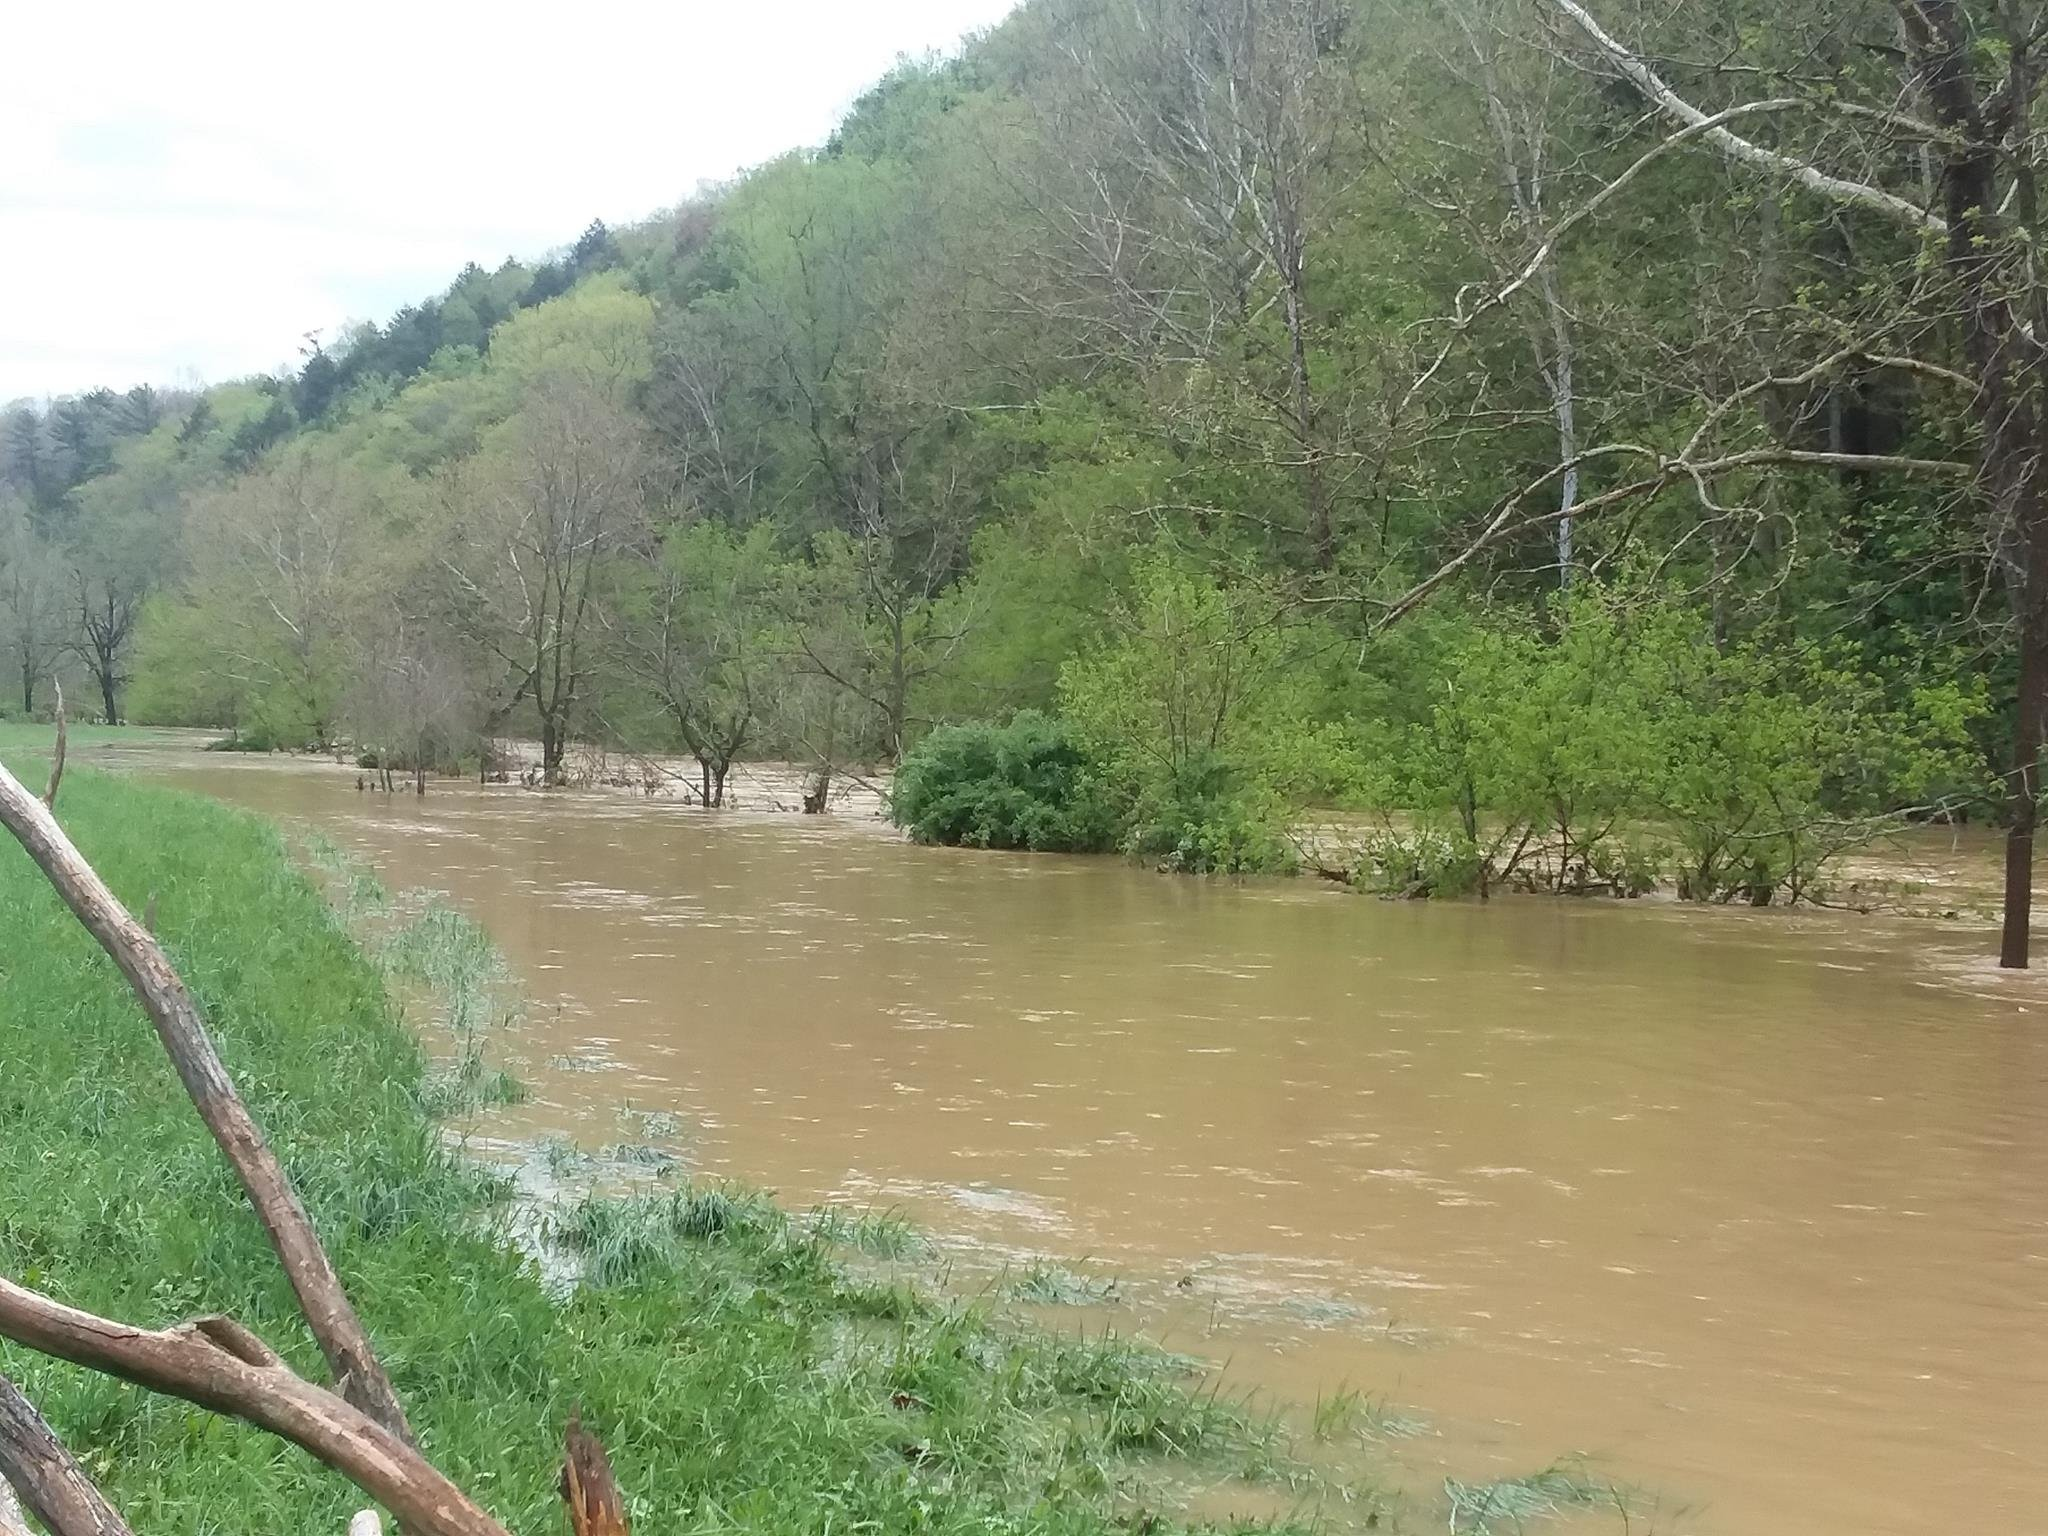 Flooding in Greenville, WV. Photo Credit: Penny Brooks